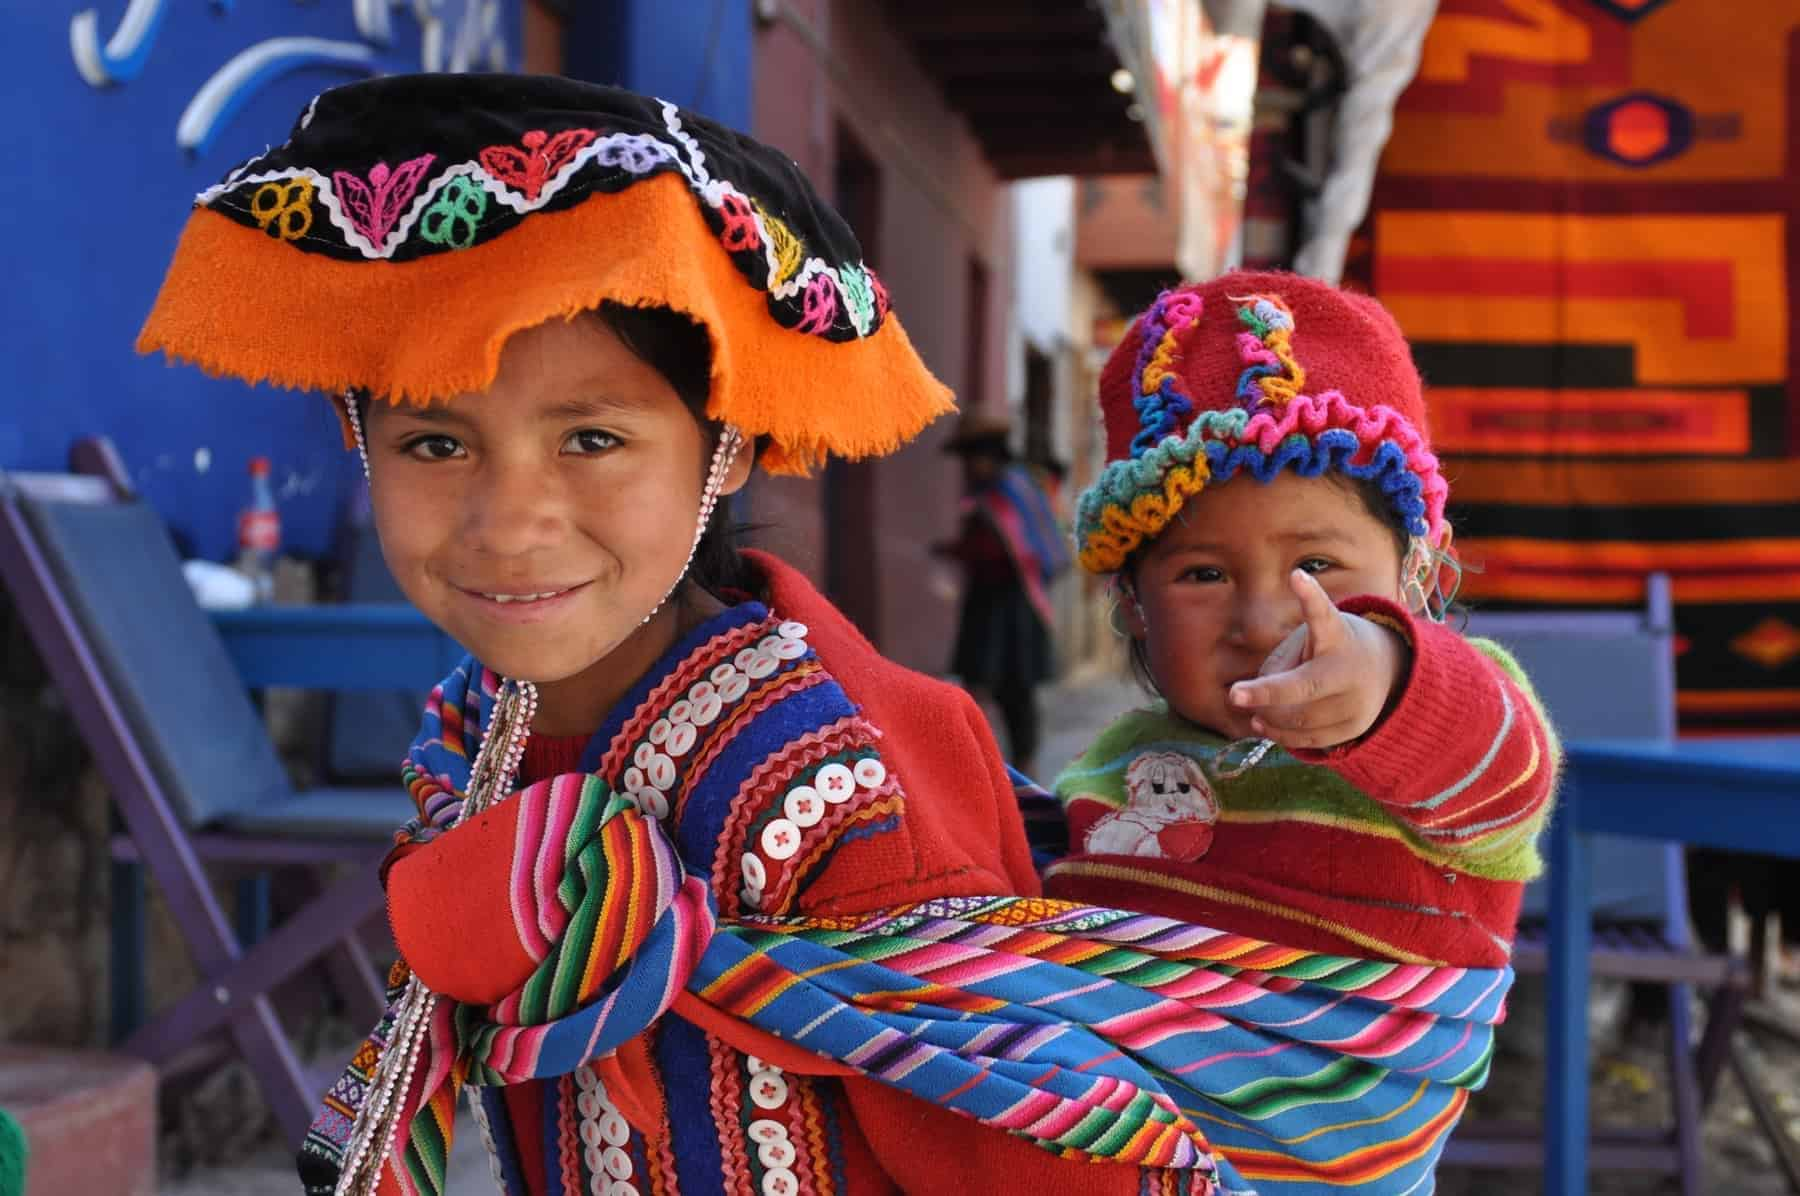 Peru and children